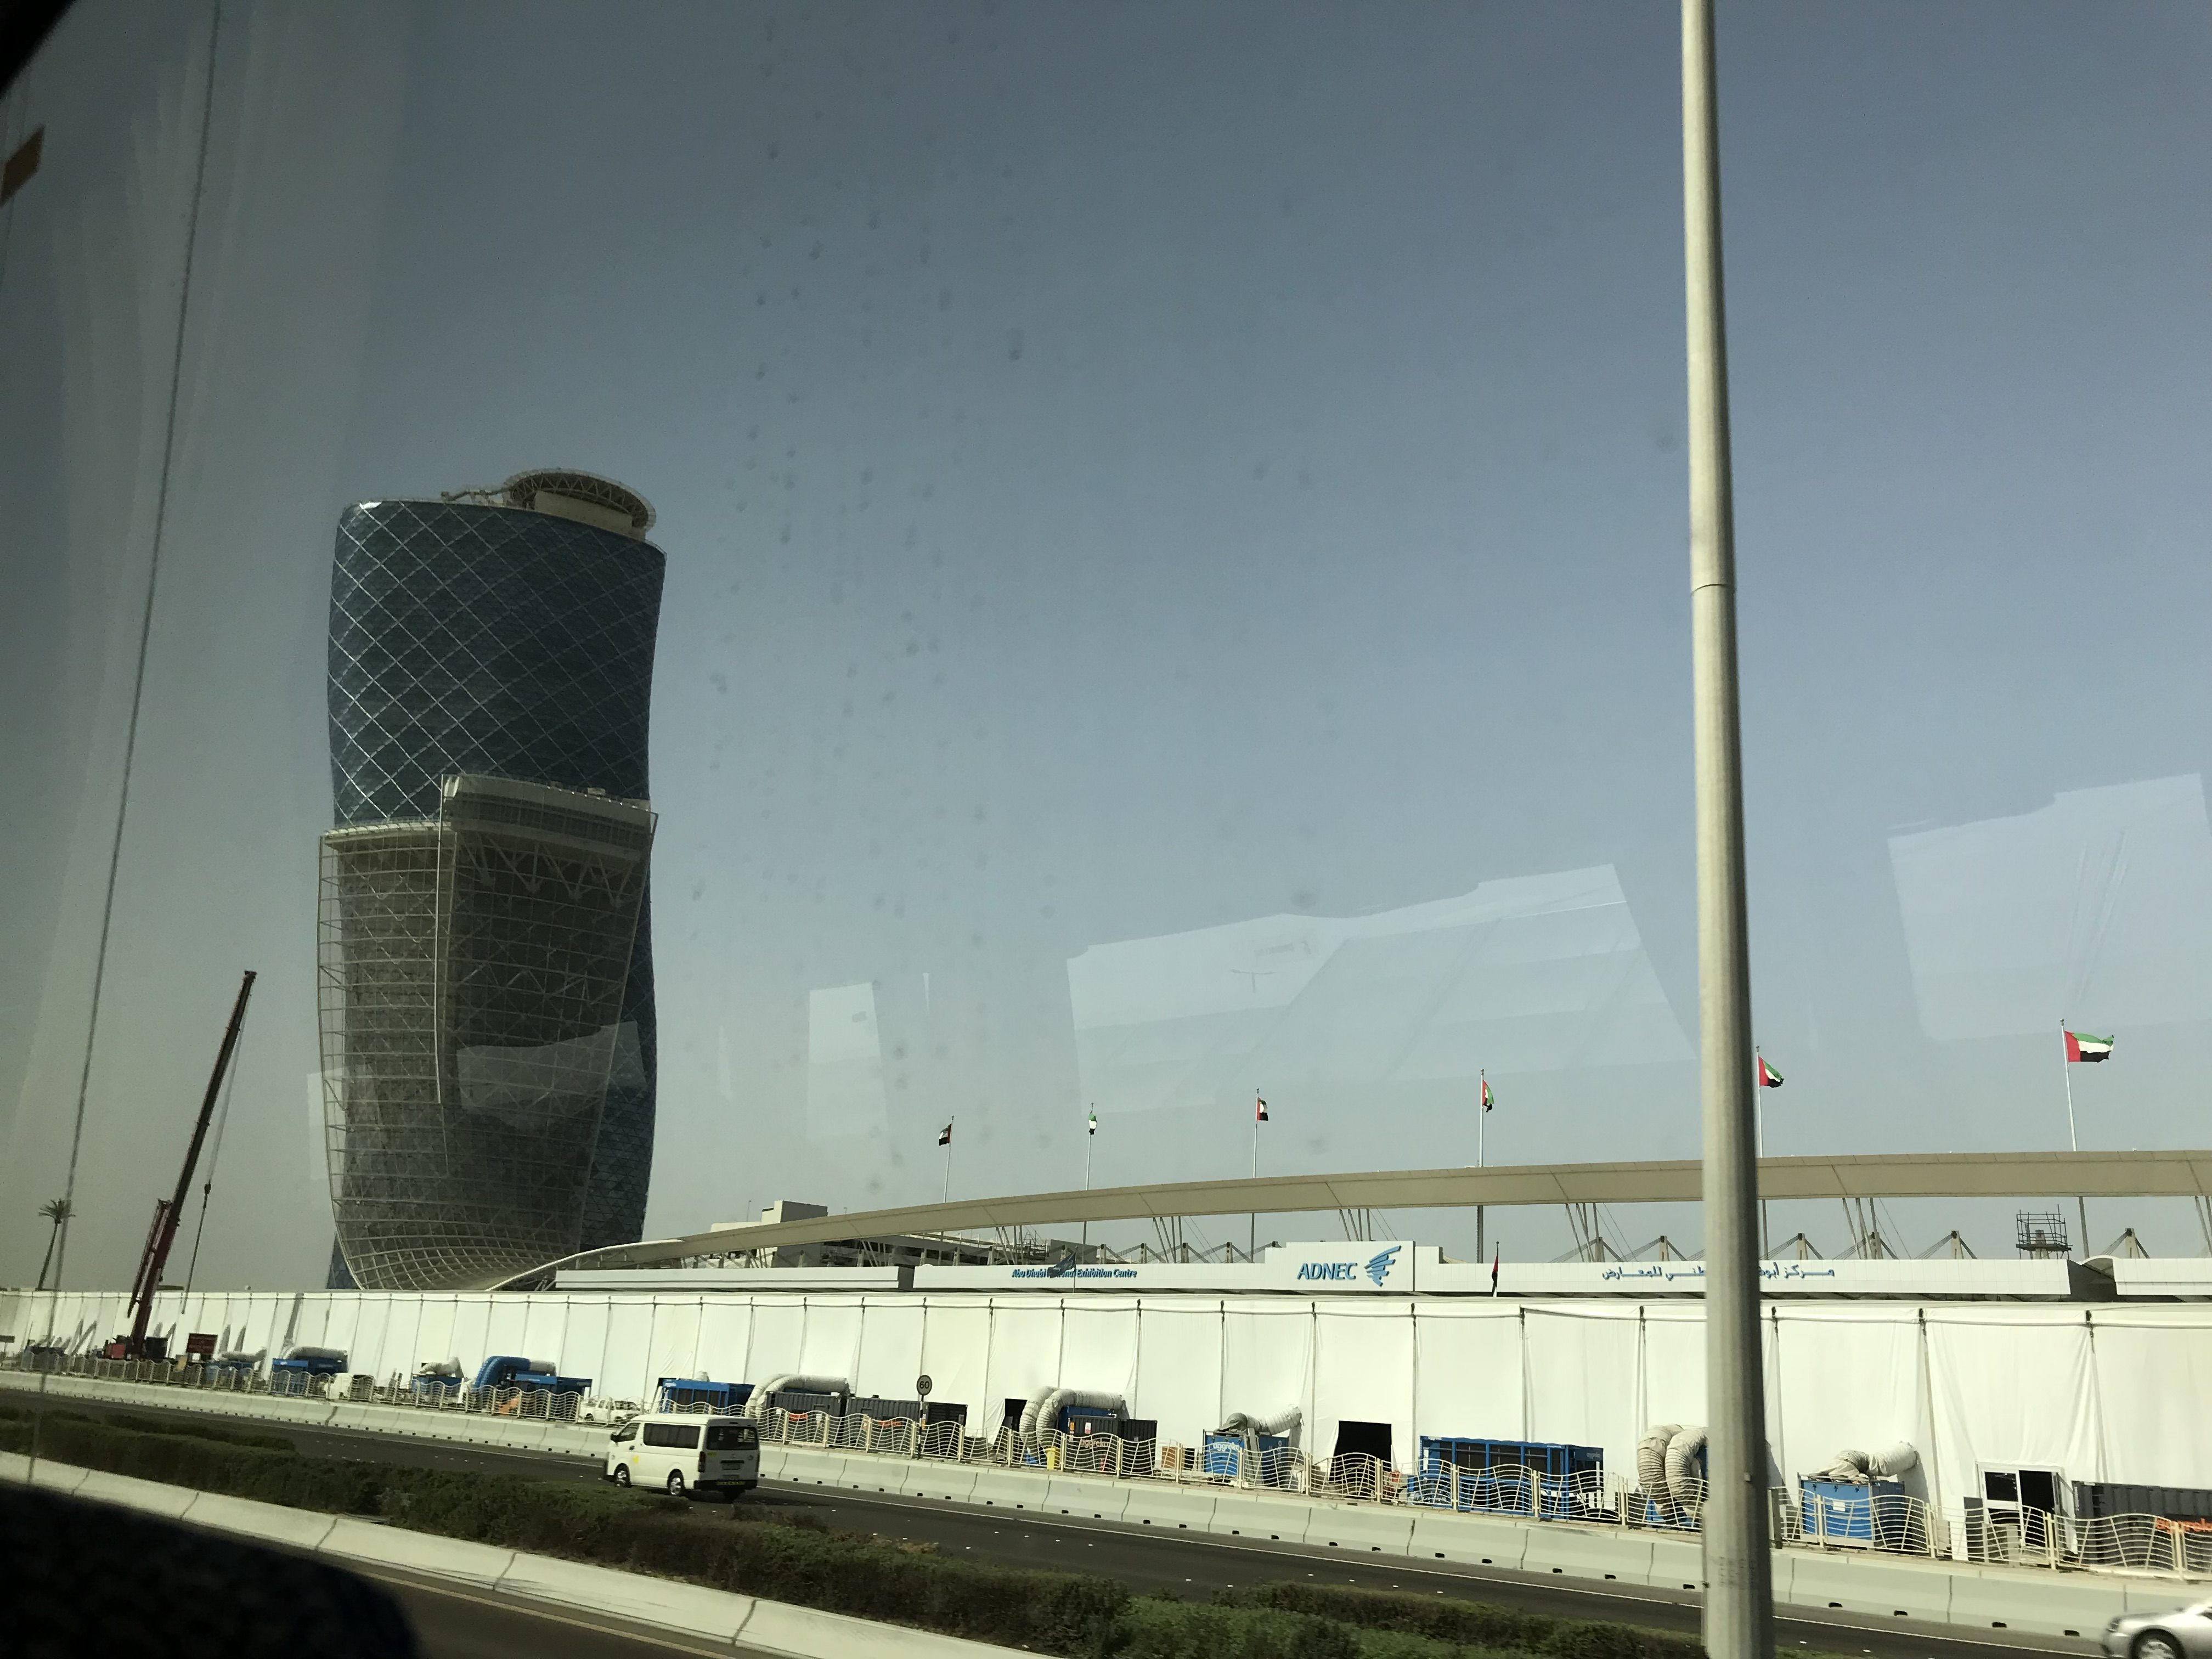 Bye ADNEC. I had good memories here working with people all over theworld.